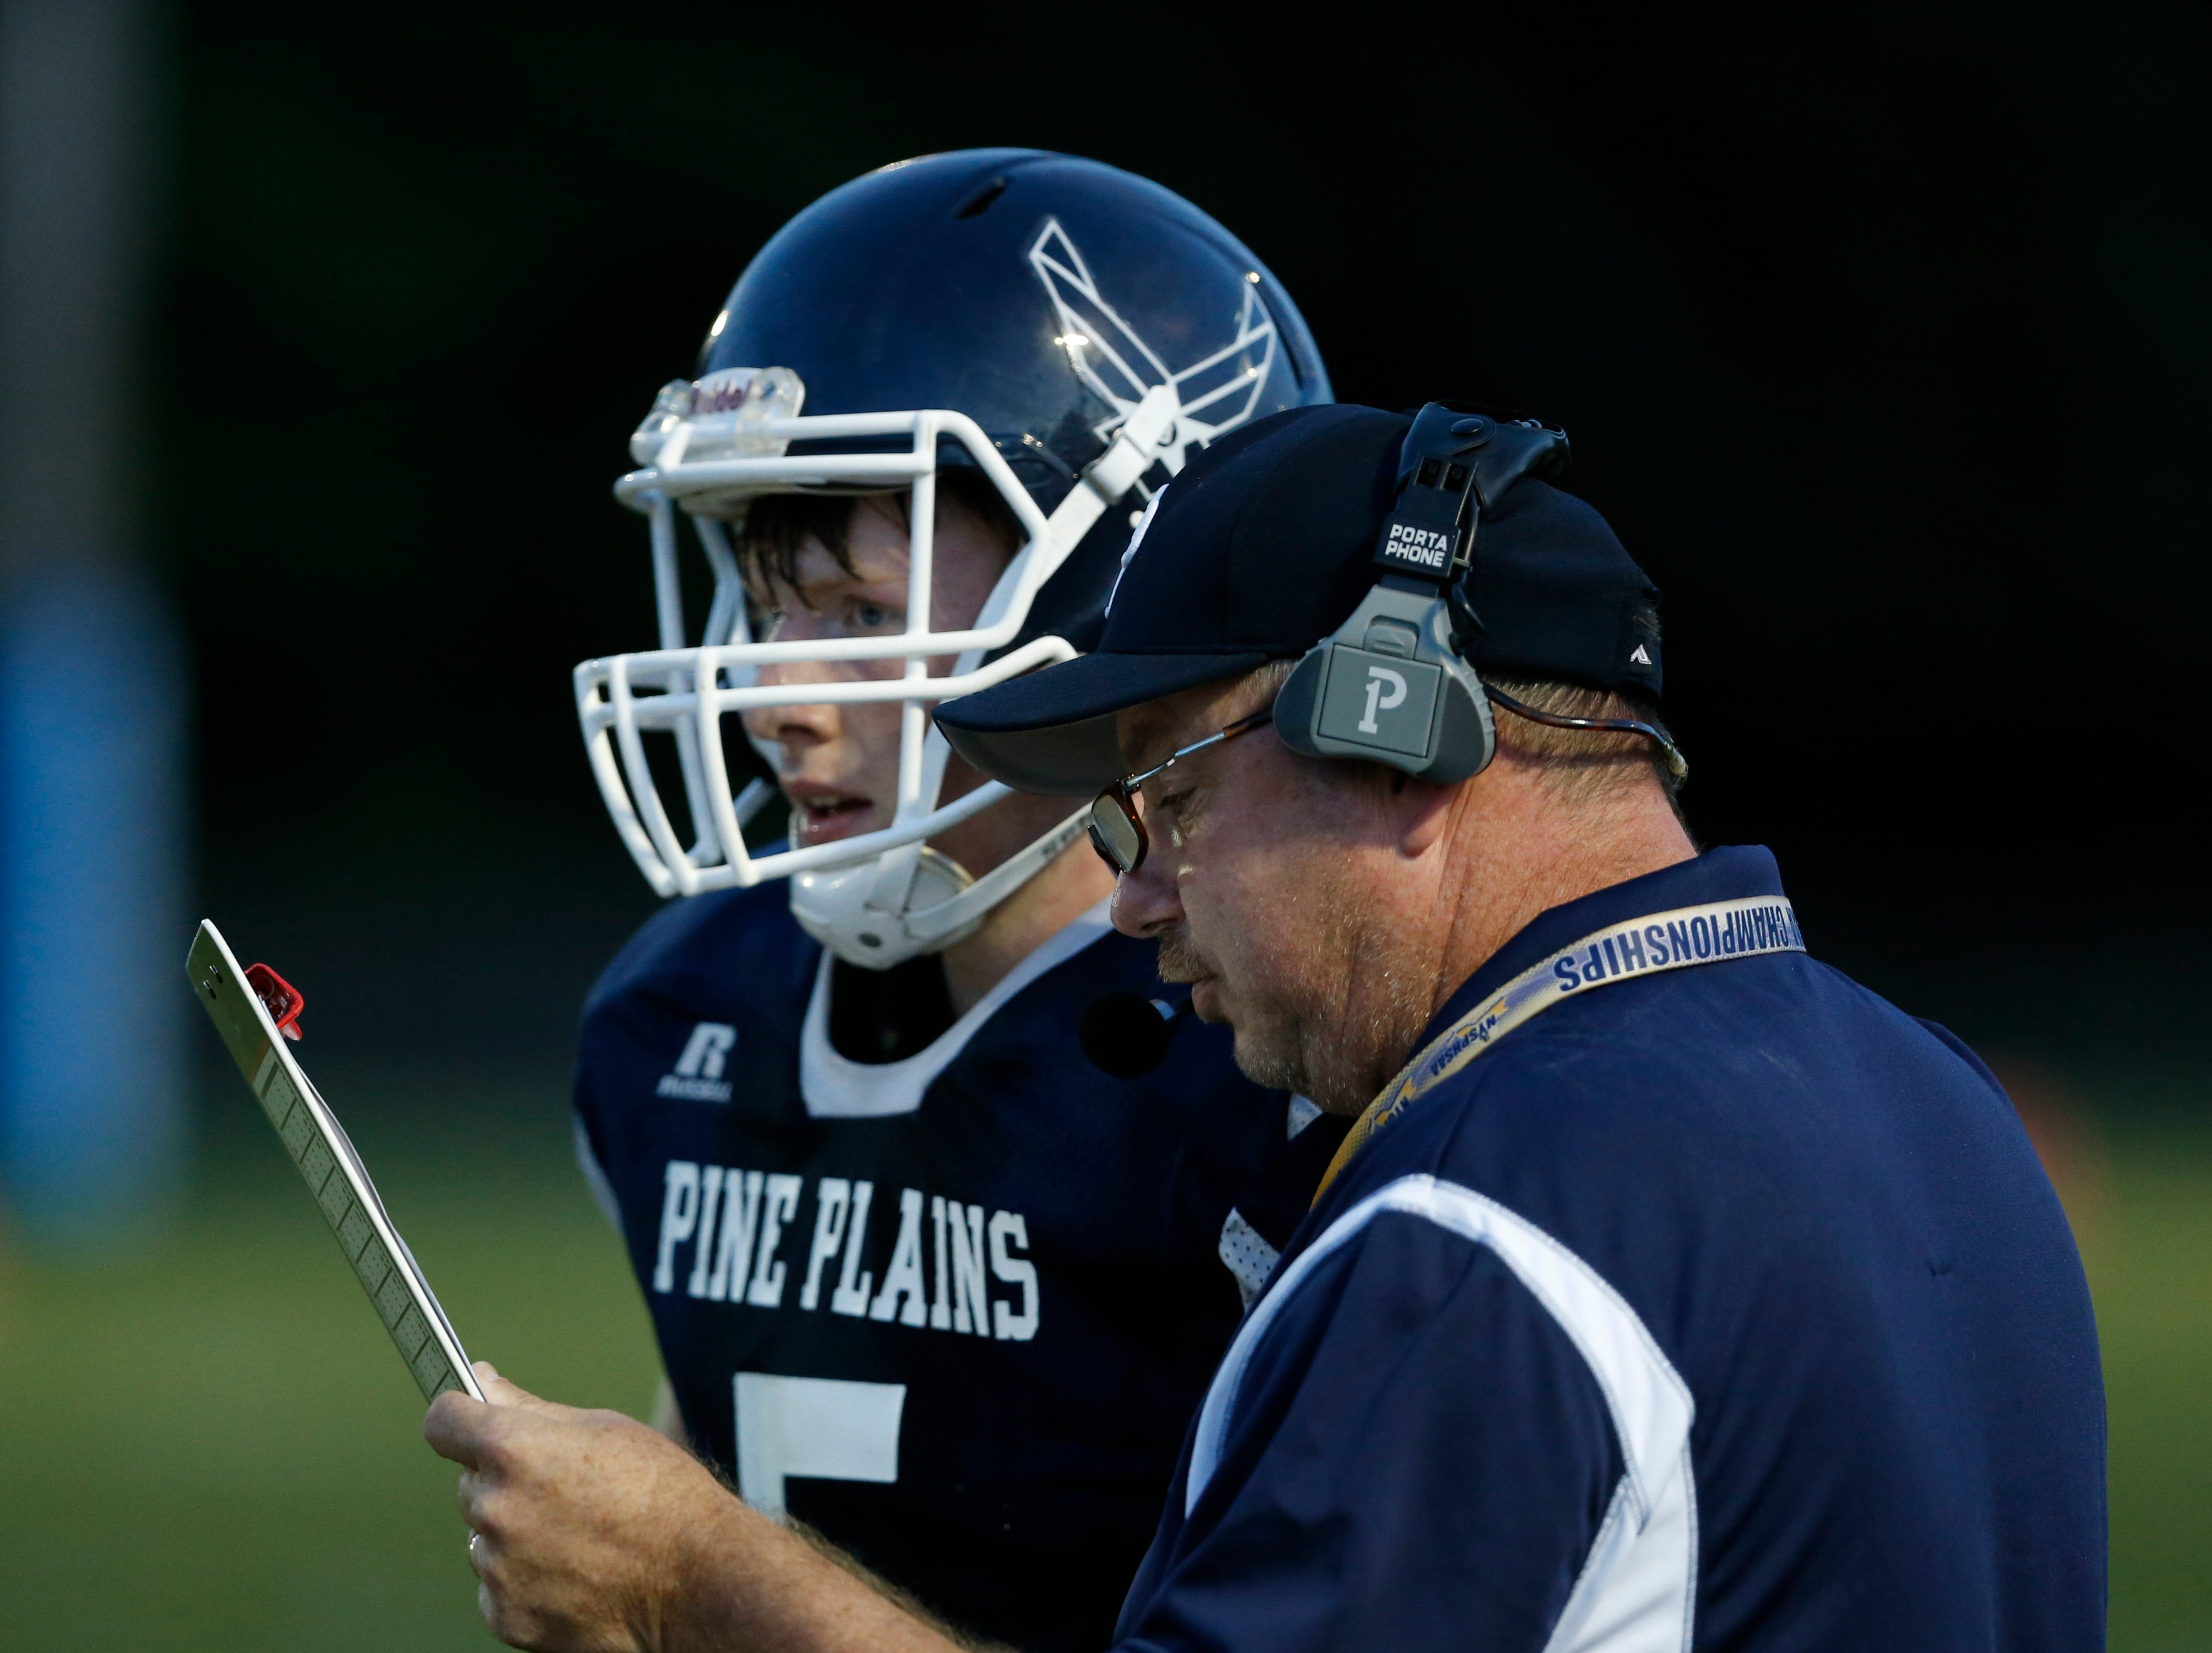 Pine Plains' head coach Rob Scott goes over a play with quarterback Andrew Holsopple during Friday's game versus Roscoe at Stissing Mountain High School on September 7, 2018.